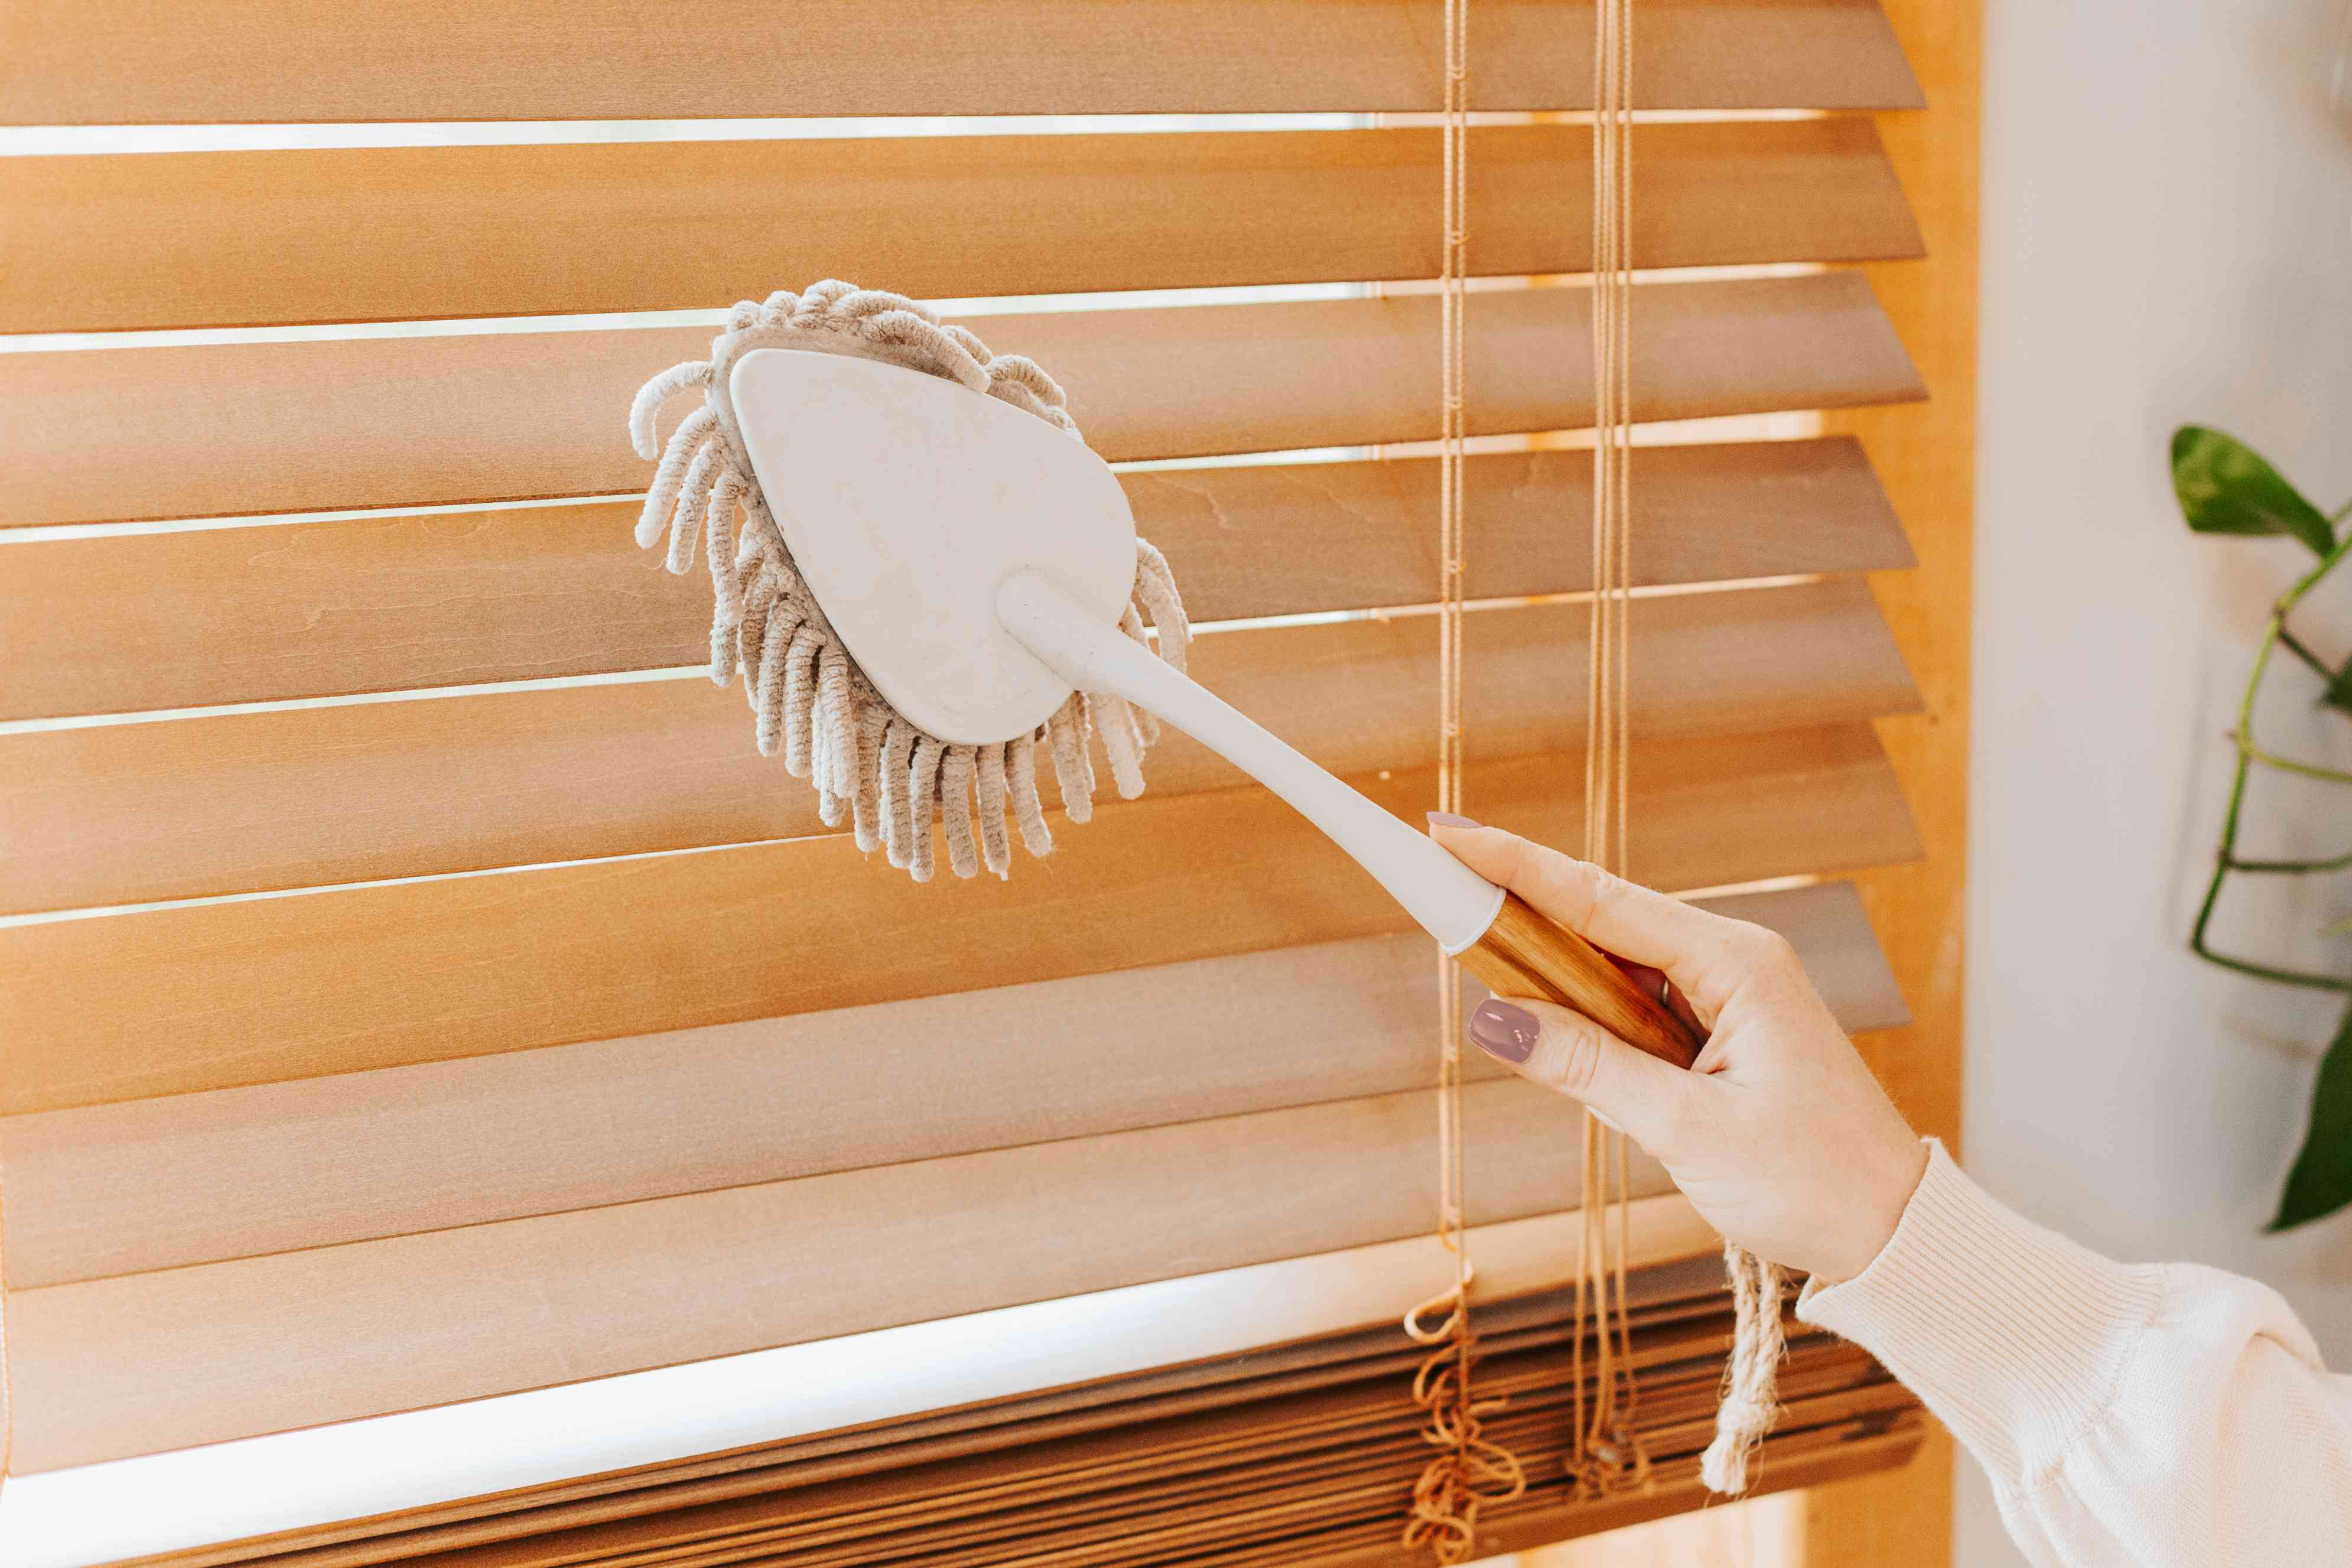 Microfiber duster wiping down wooden blinds